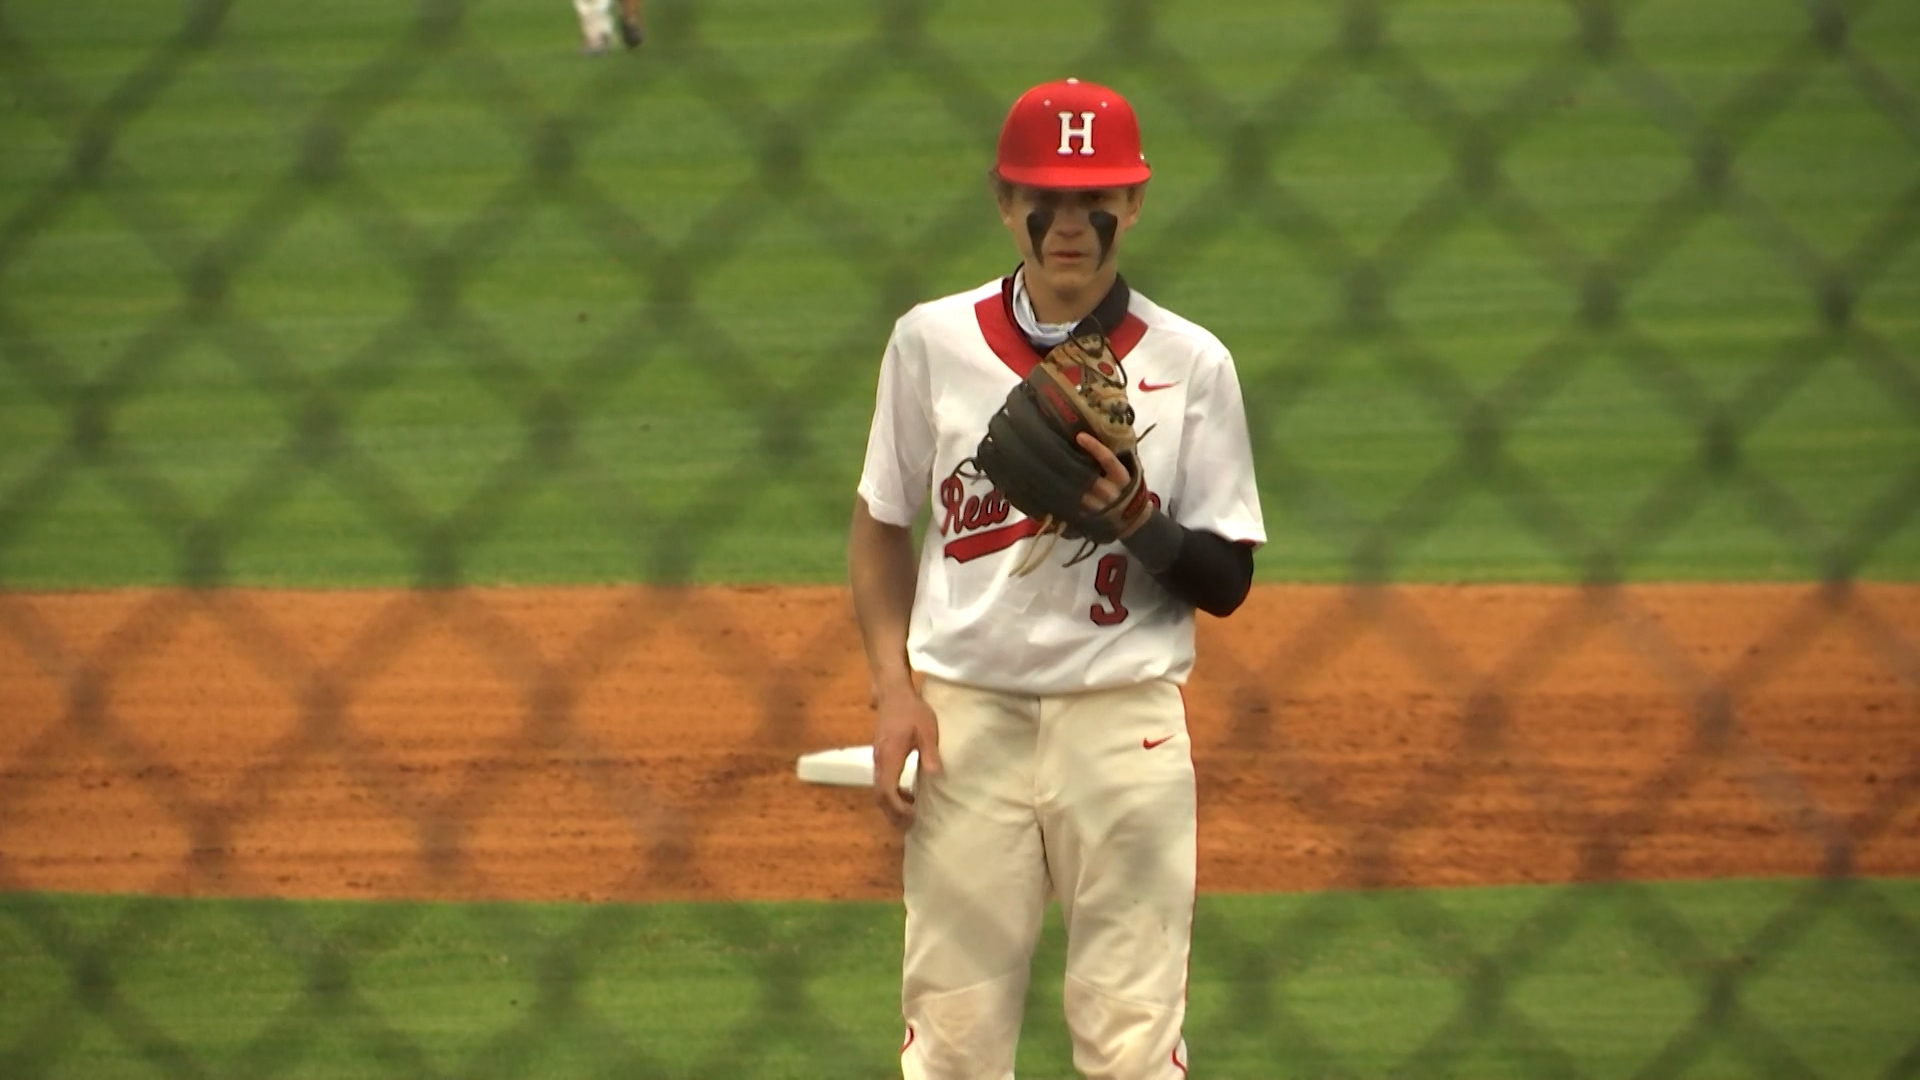 SCBCA announces all-state baseball teams, Cannarella named co-player of the year